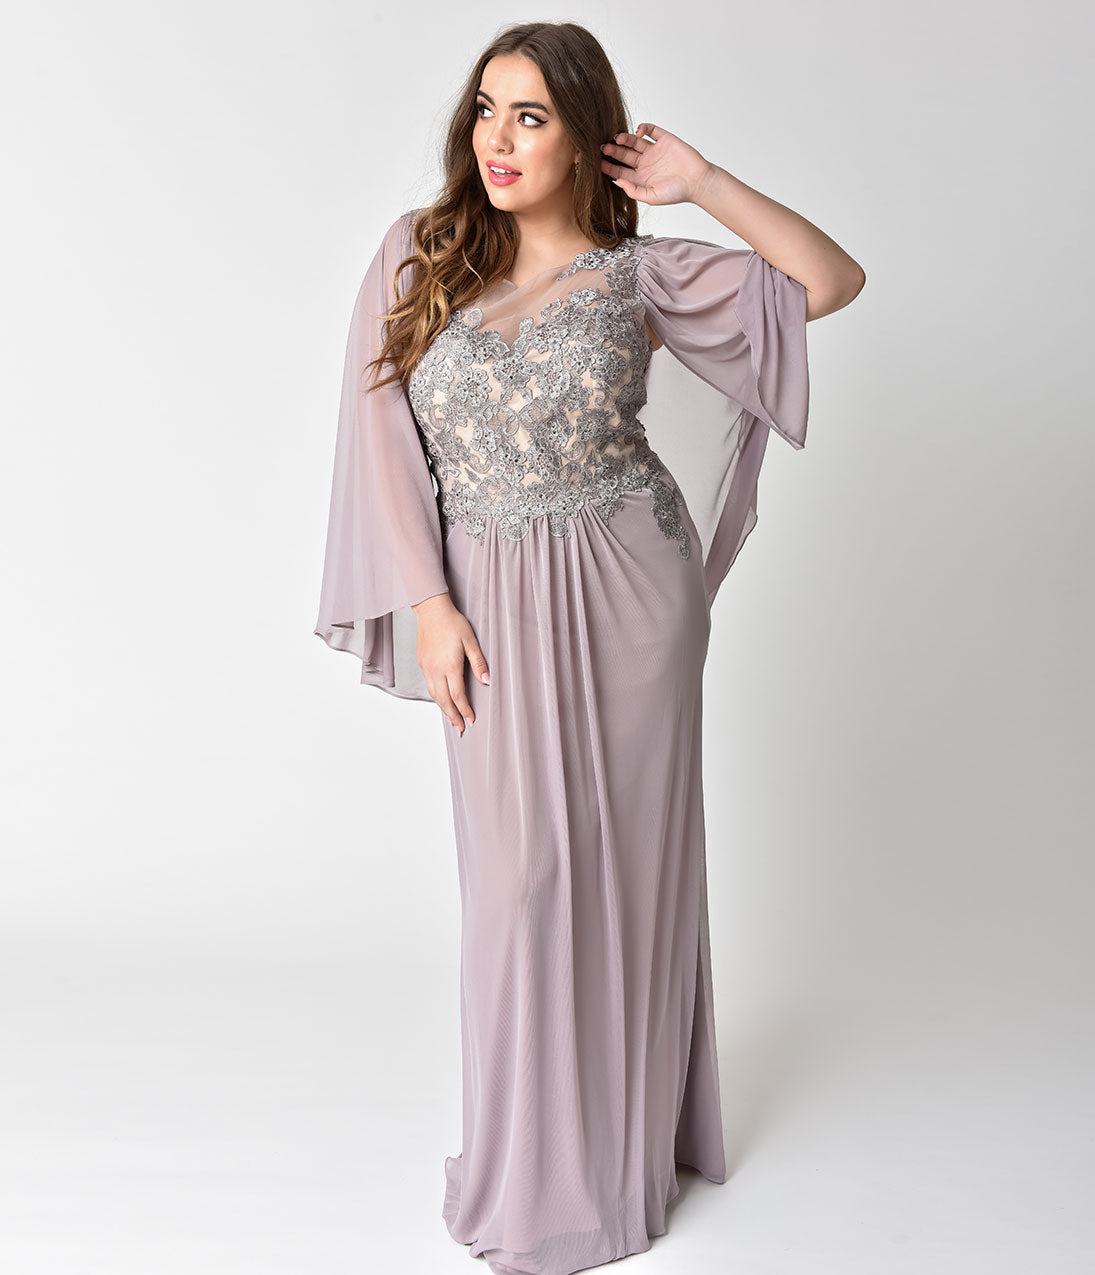 1930s Evening Dresses | Old Hollywood Dress Plus Size Mauve Mocha Embellished Mesh Sleeved Cape Gown $238.00 AT vintagedancer.com